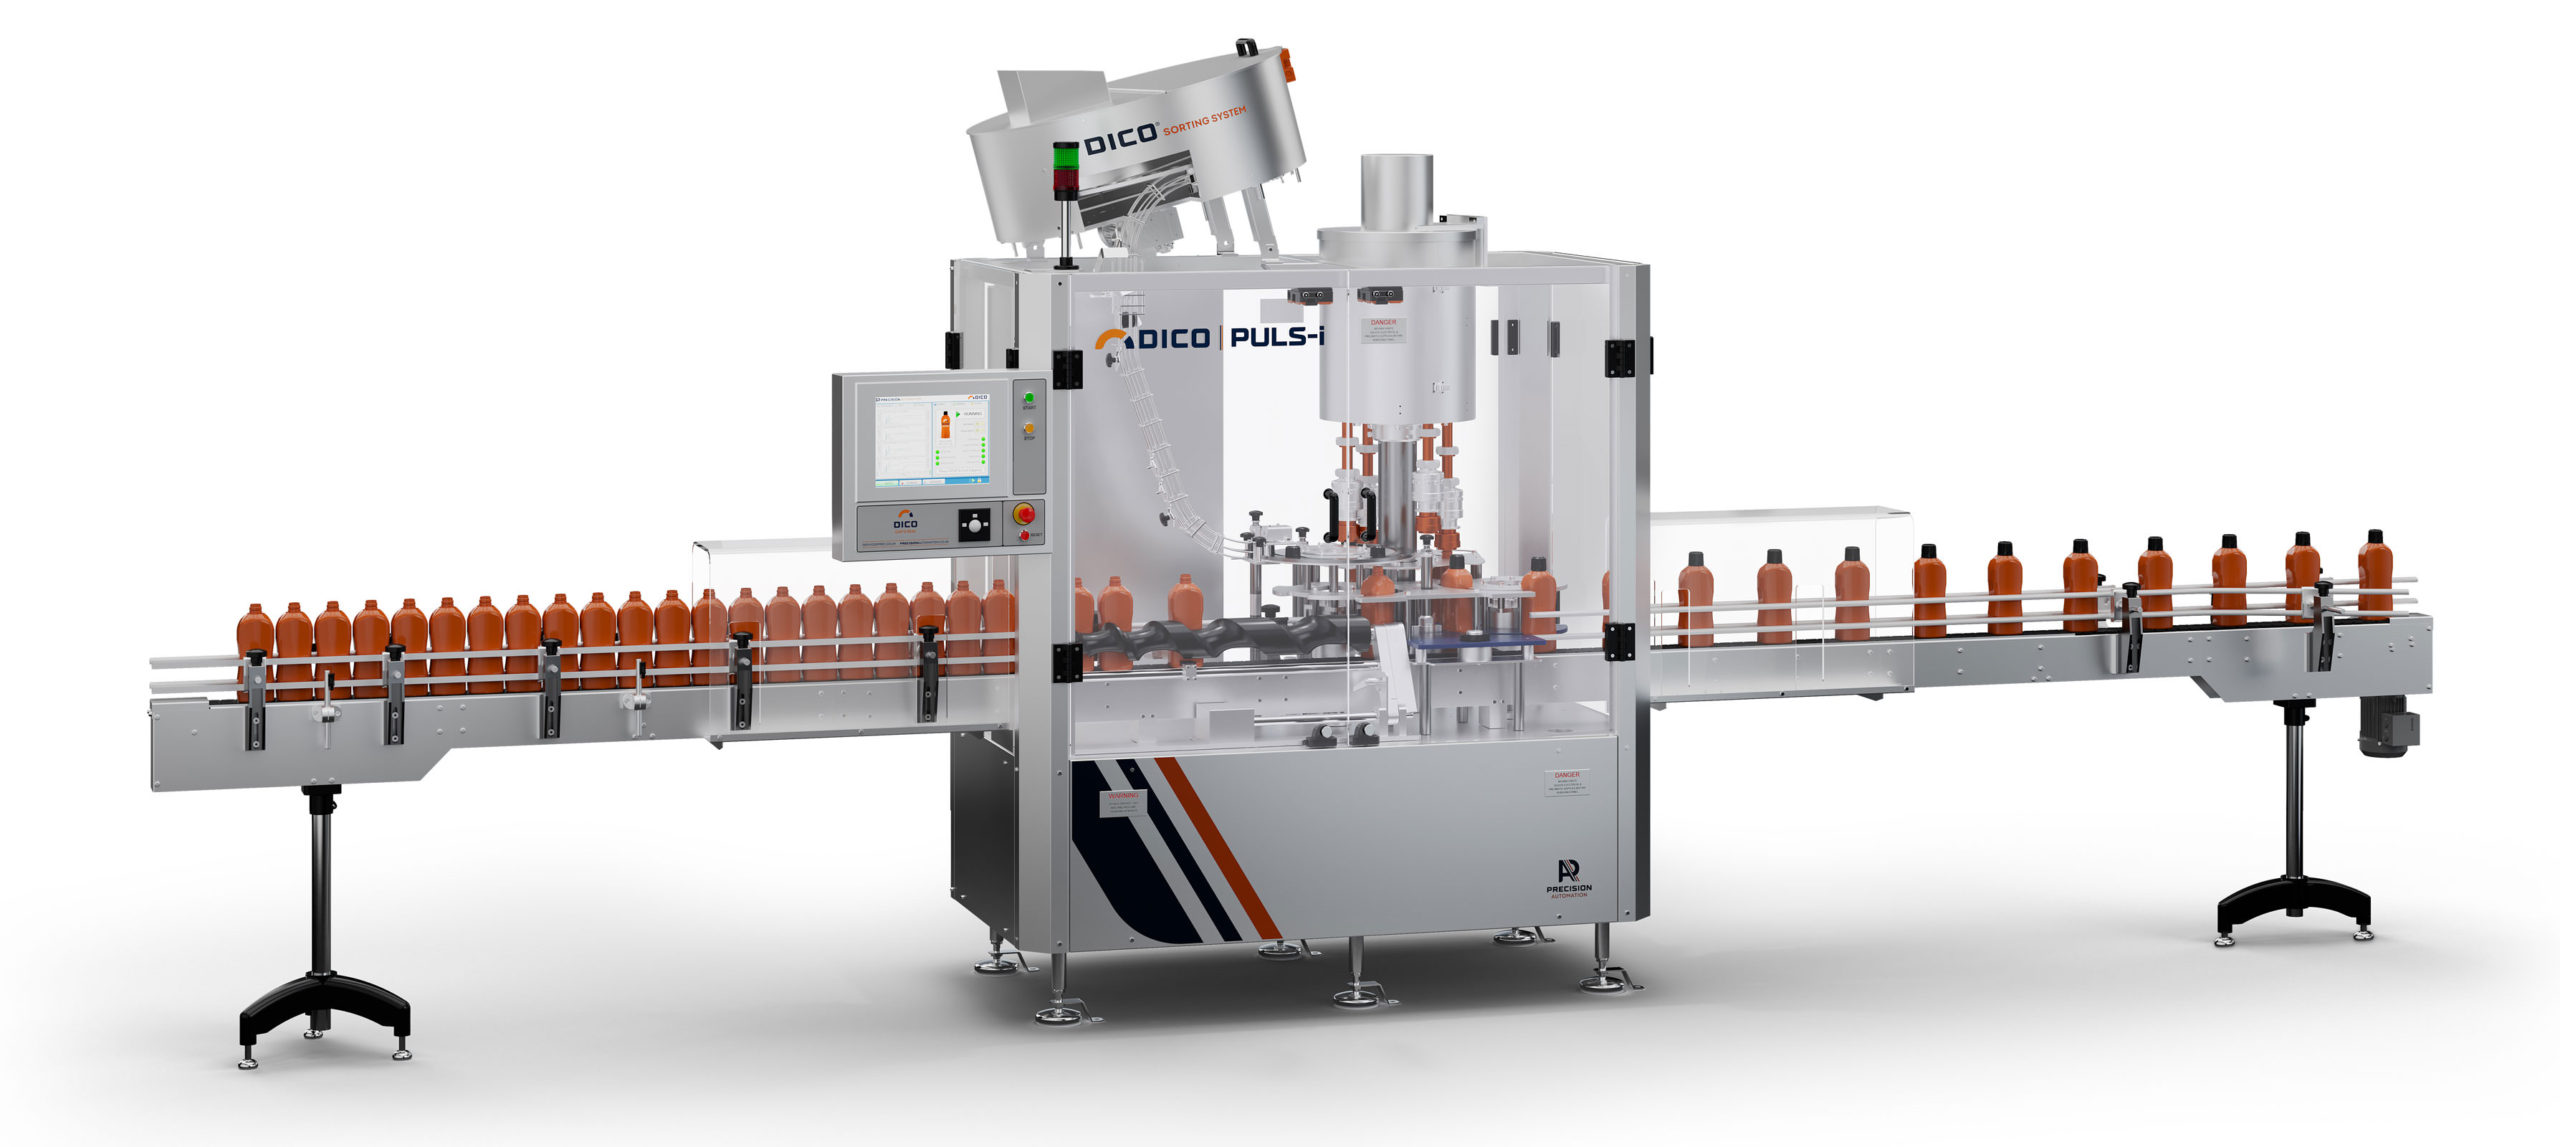 Dico Puls-i capping machine, designed and manufactured by Precision Automation